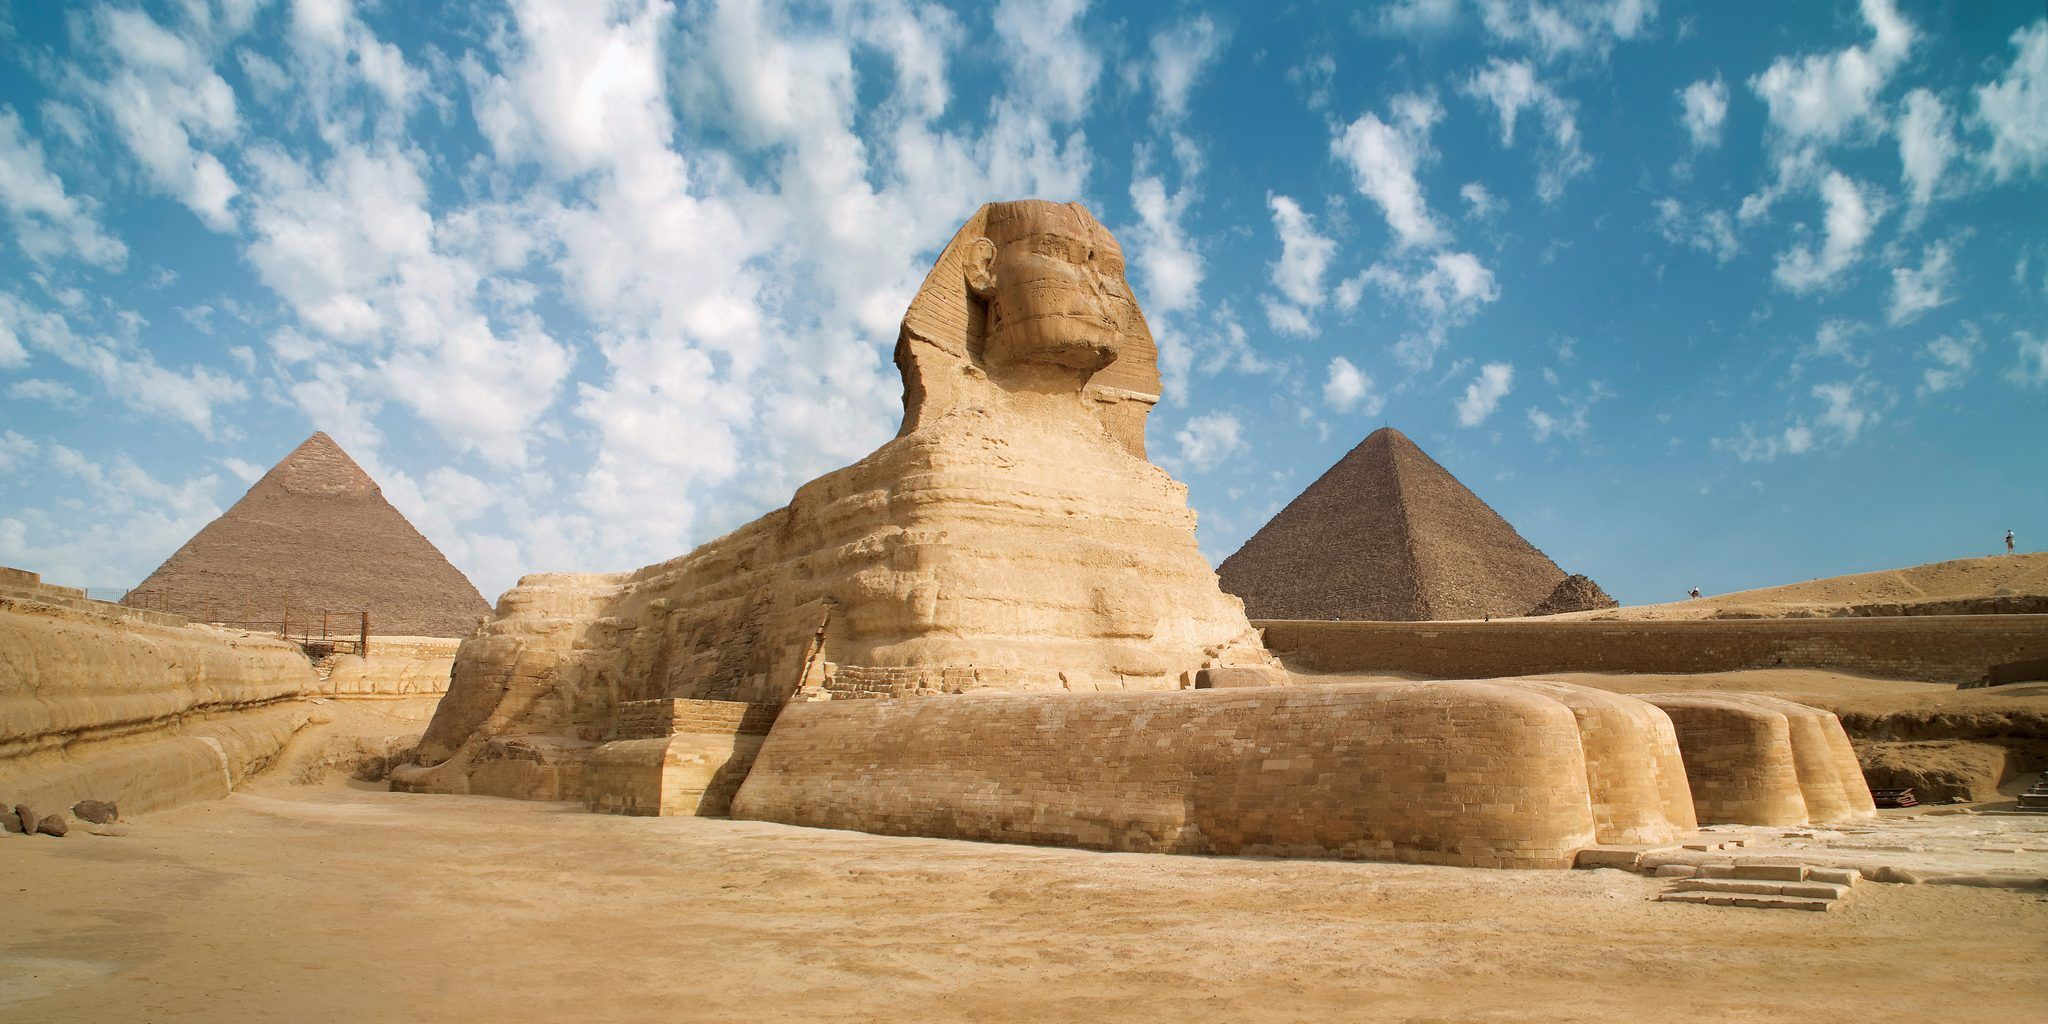 25 Strange Facts About The Pyramids Of Egypt Very Few Know